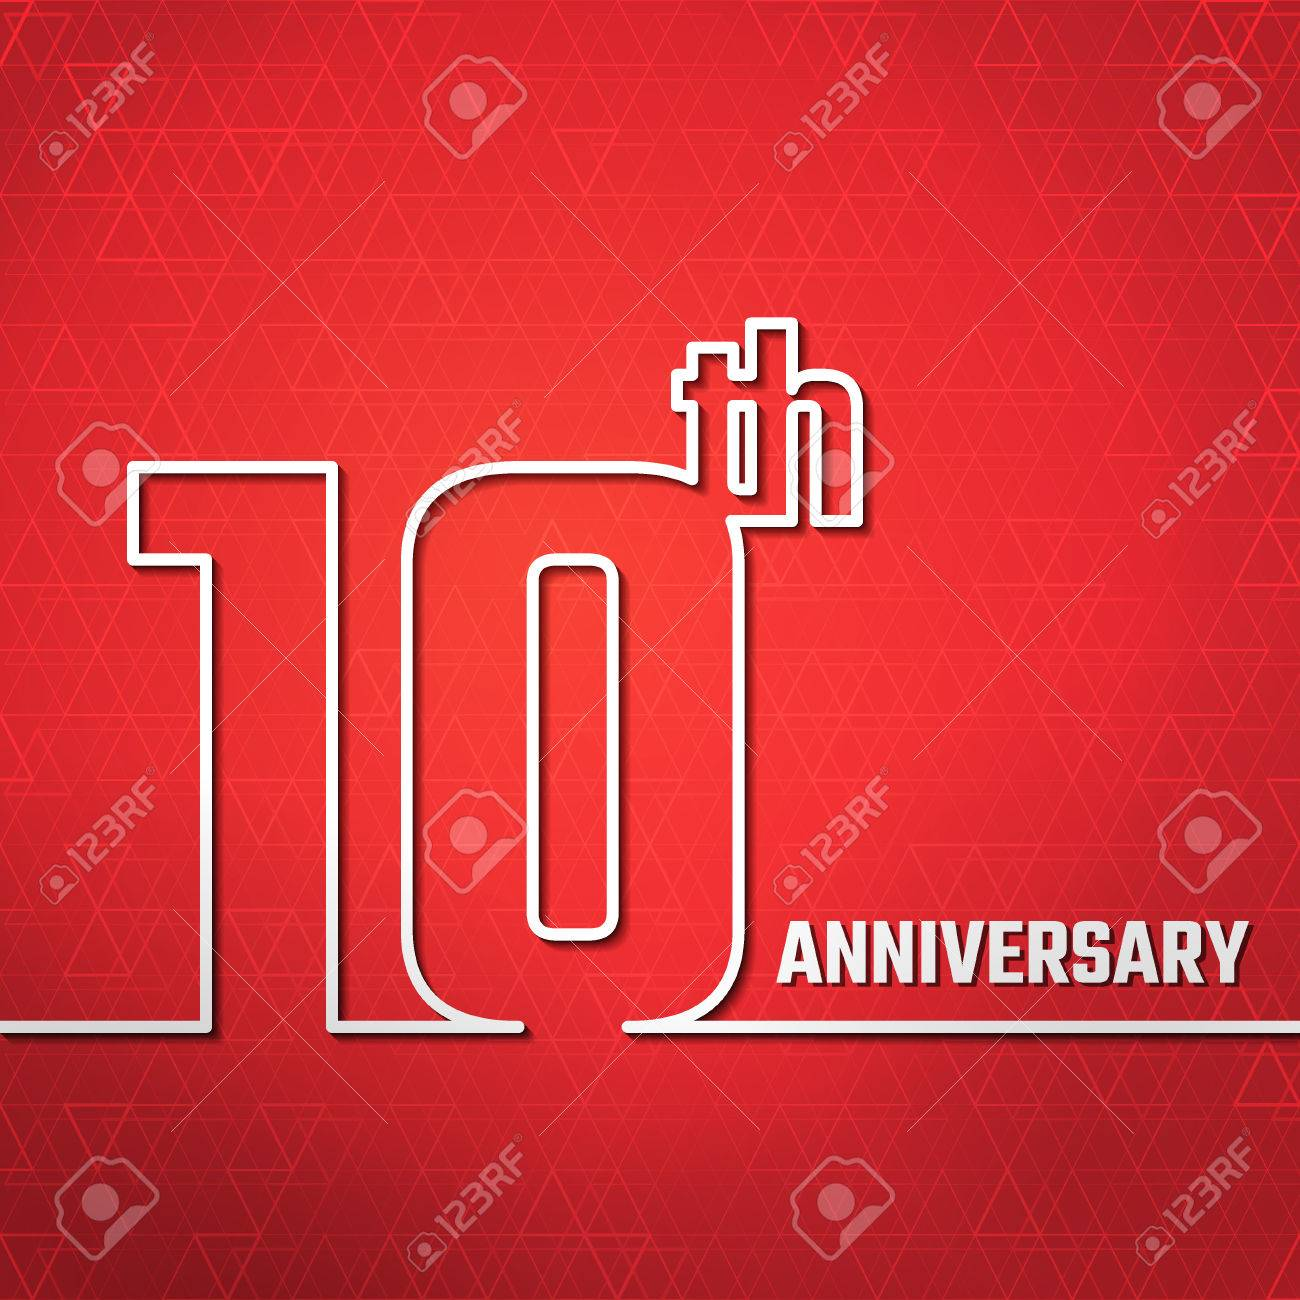 Vector Illustration of 10th Anniversary Outline for Design, Website, Background, Banner. Jubilee silhouette Element Template for greeting card - 49779972